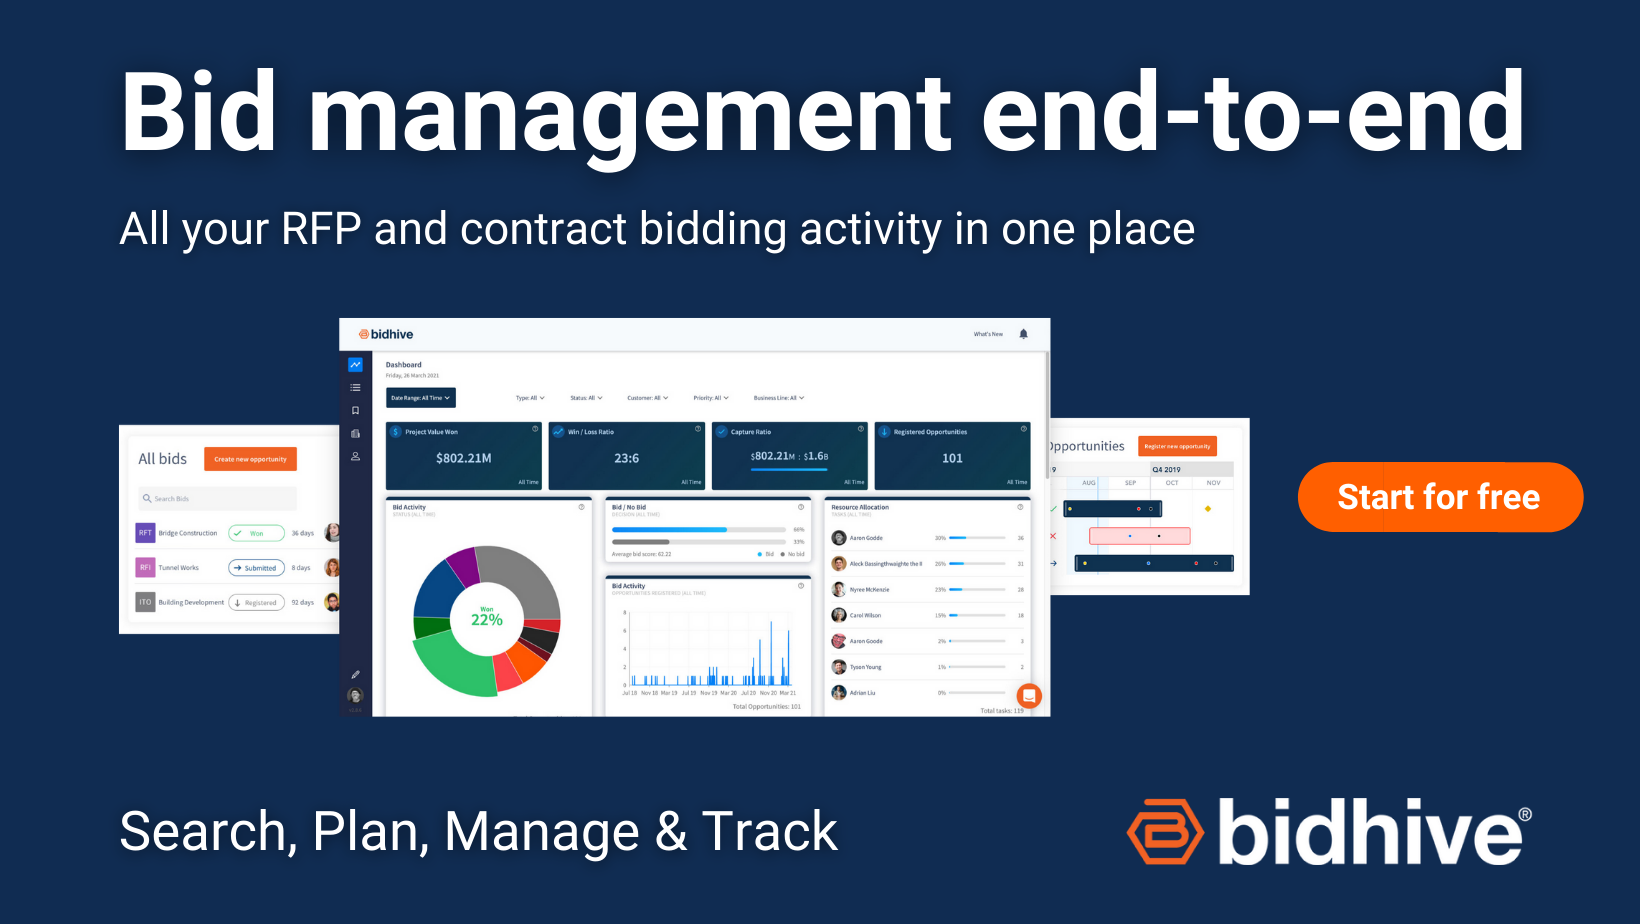 Bidhive end-to-end process dashboard